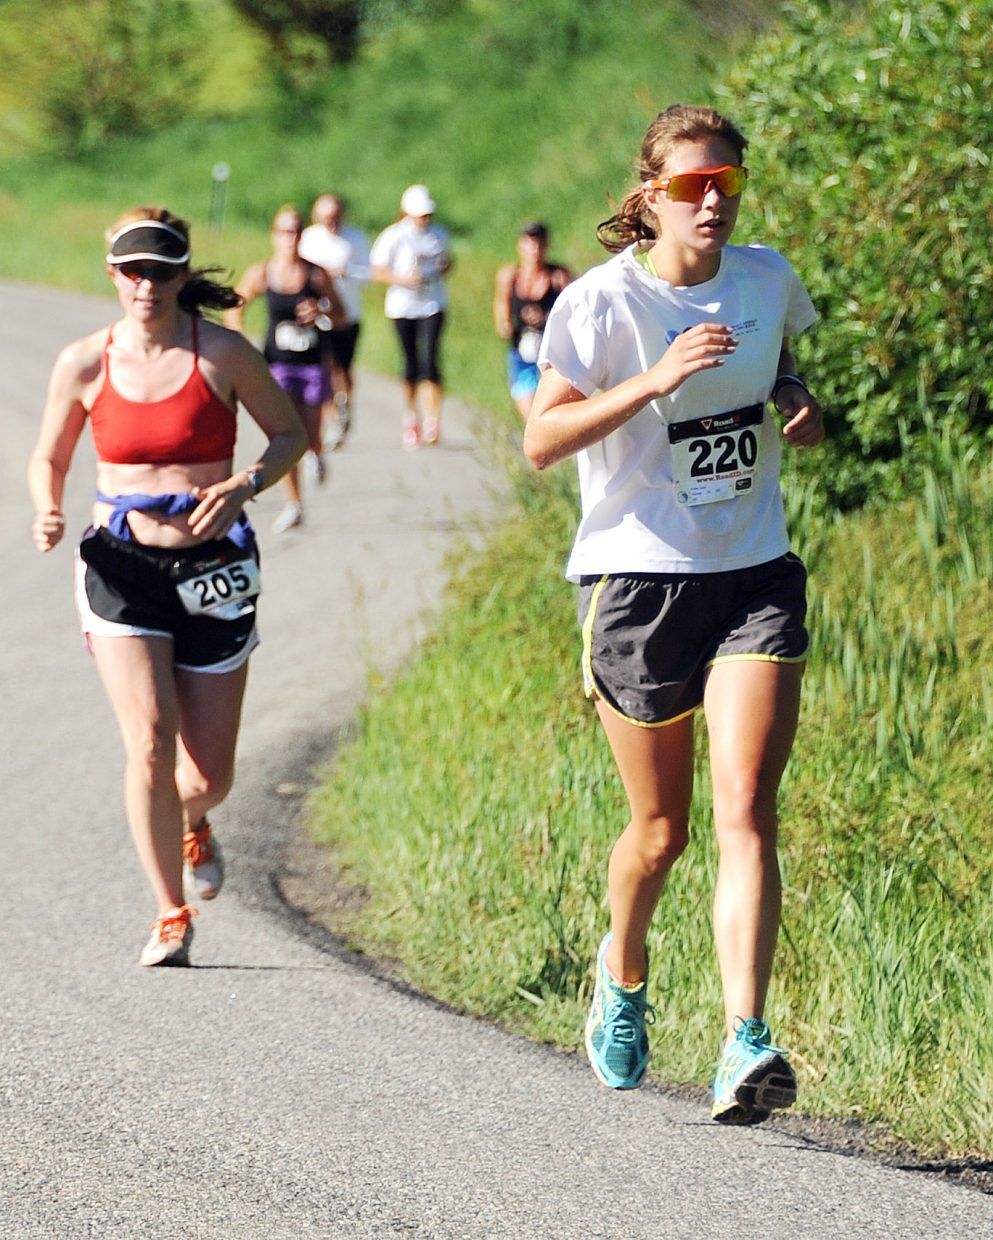 Cara Piske leads a pack of runners in the Mountain Madness race in Steamboat Springs.